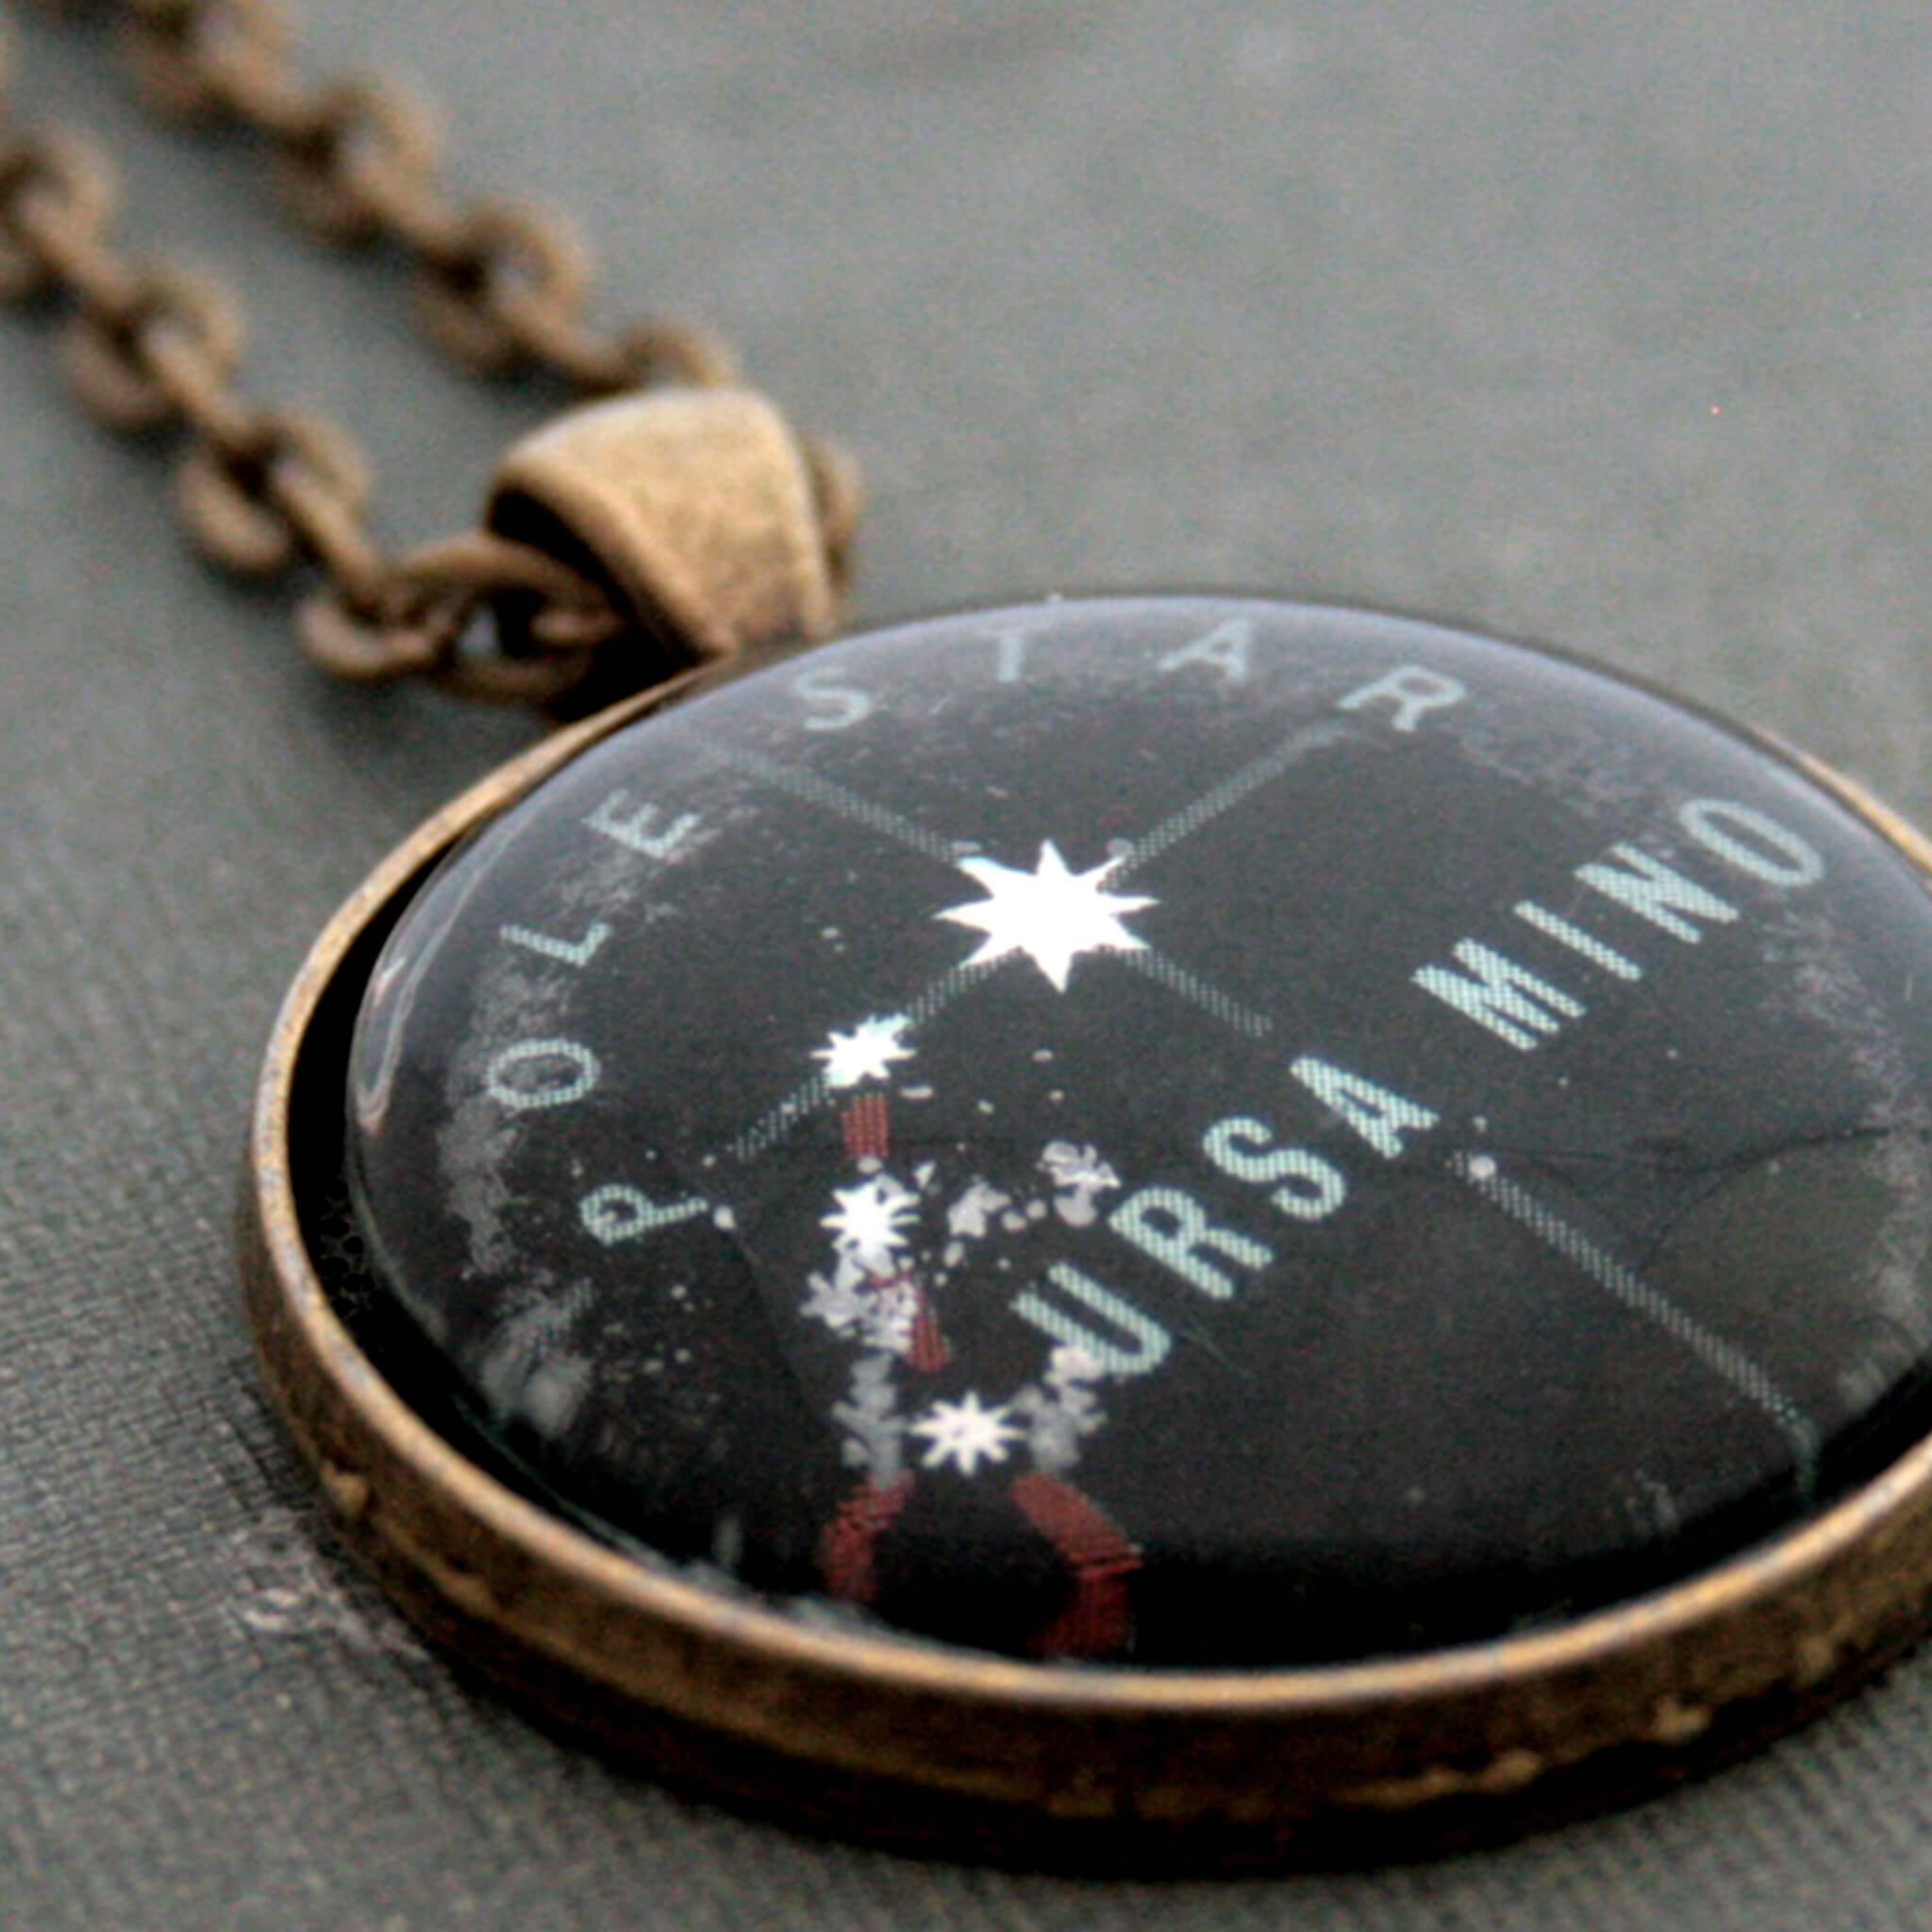 Antique bronze pendant necklace with Ursa Minor constellation and Polaris star